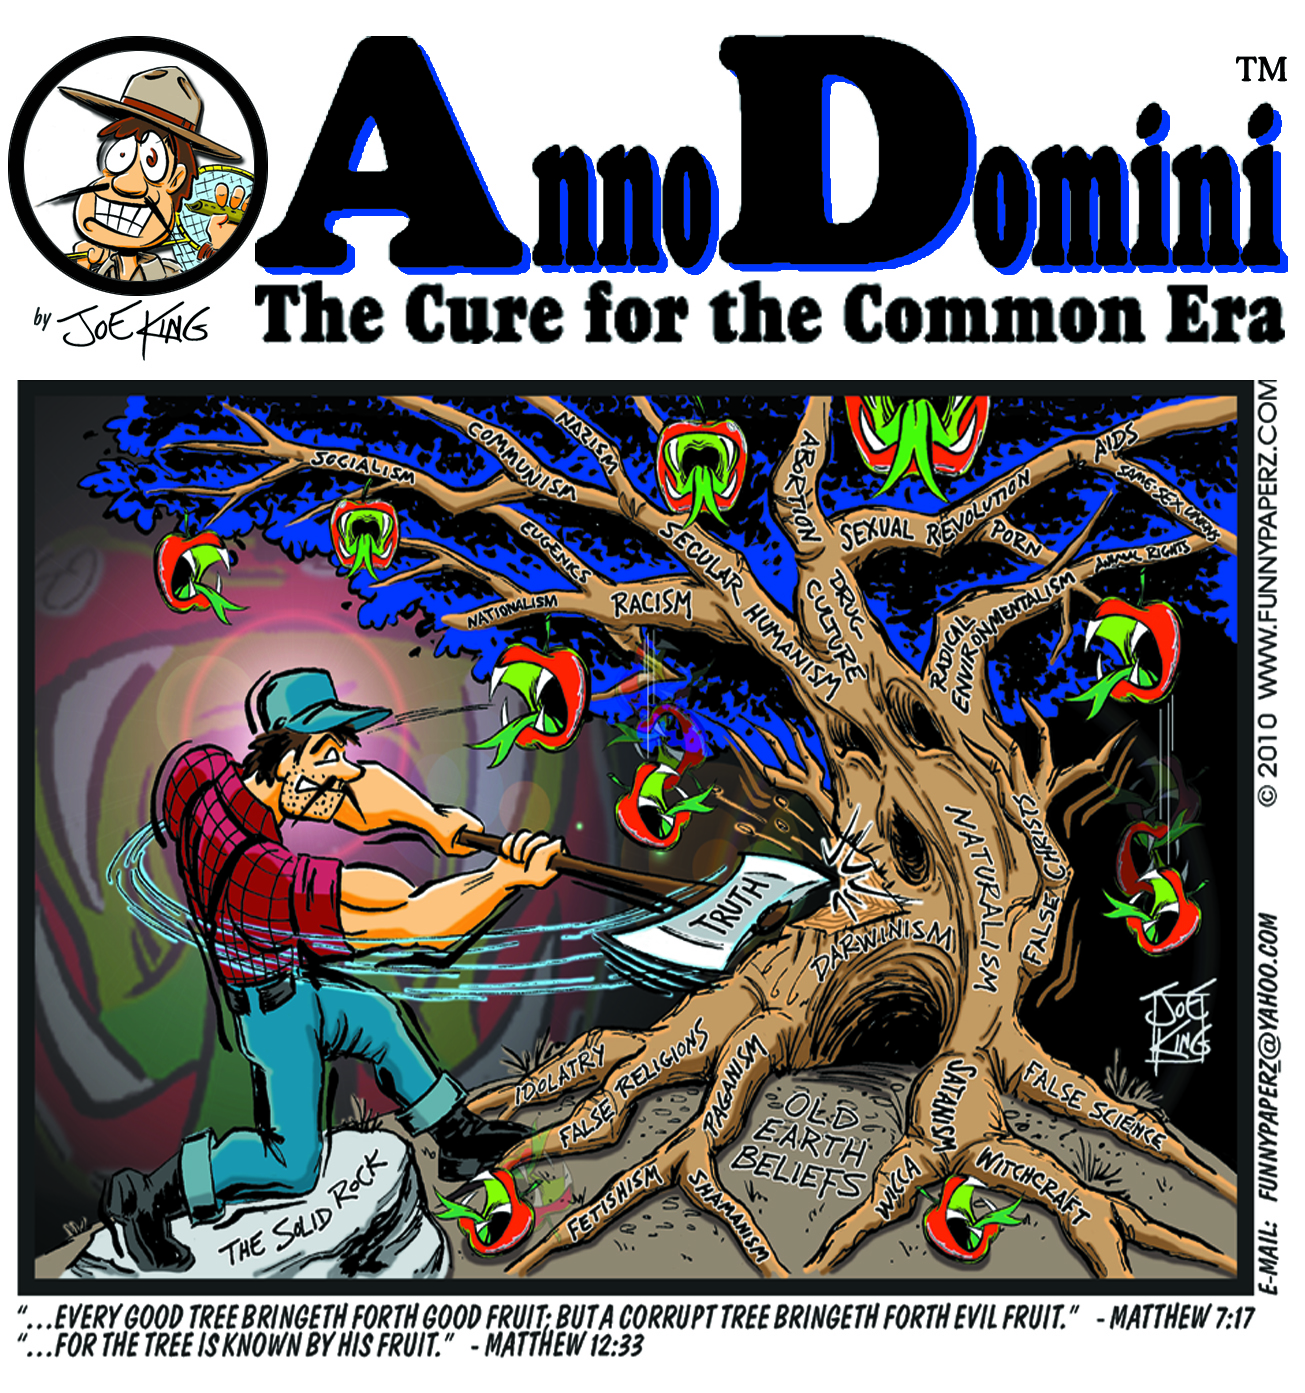 Joe King cartoon: Anno Domini: The Cure for the Common Era: The Tree (Darwinism)